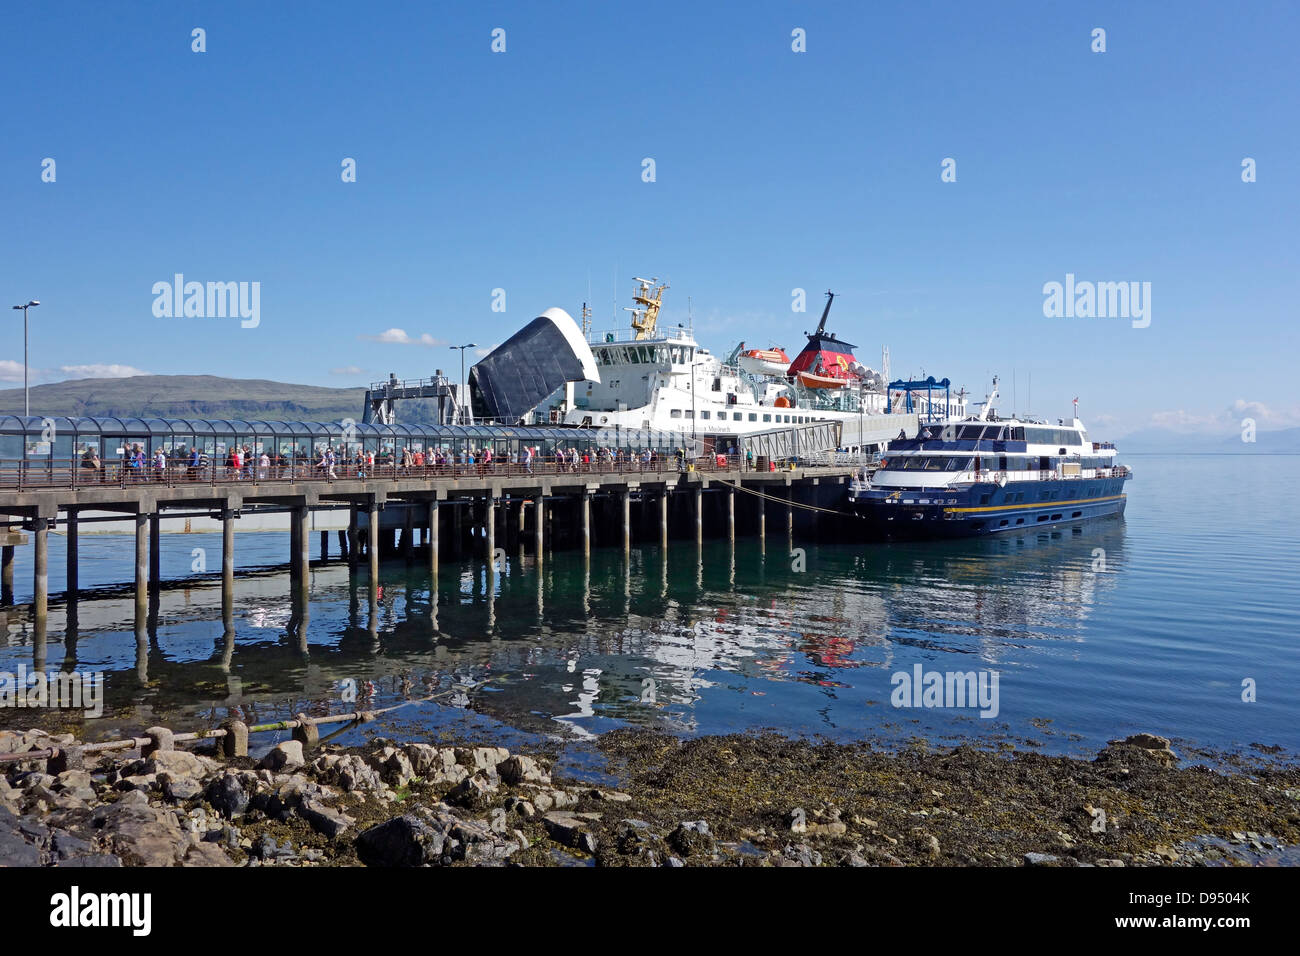 Cruise vessel Lord of the Glens moored at the pier in Craignure Mull while CalMac ferry Isle of Mull is discharging - Stock Image